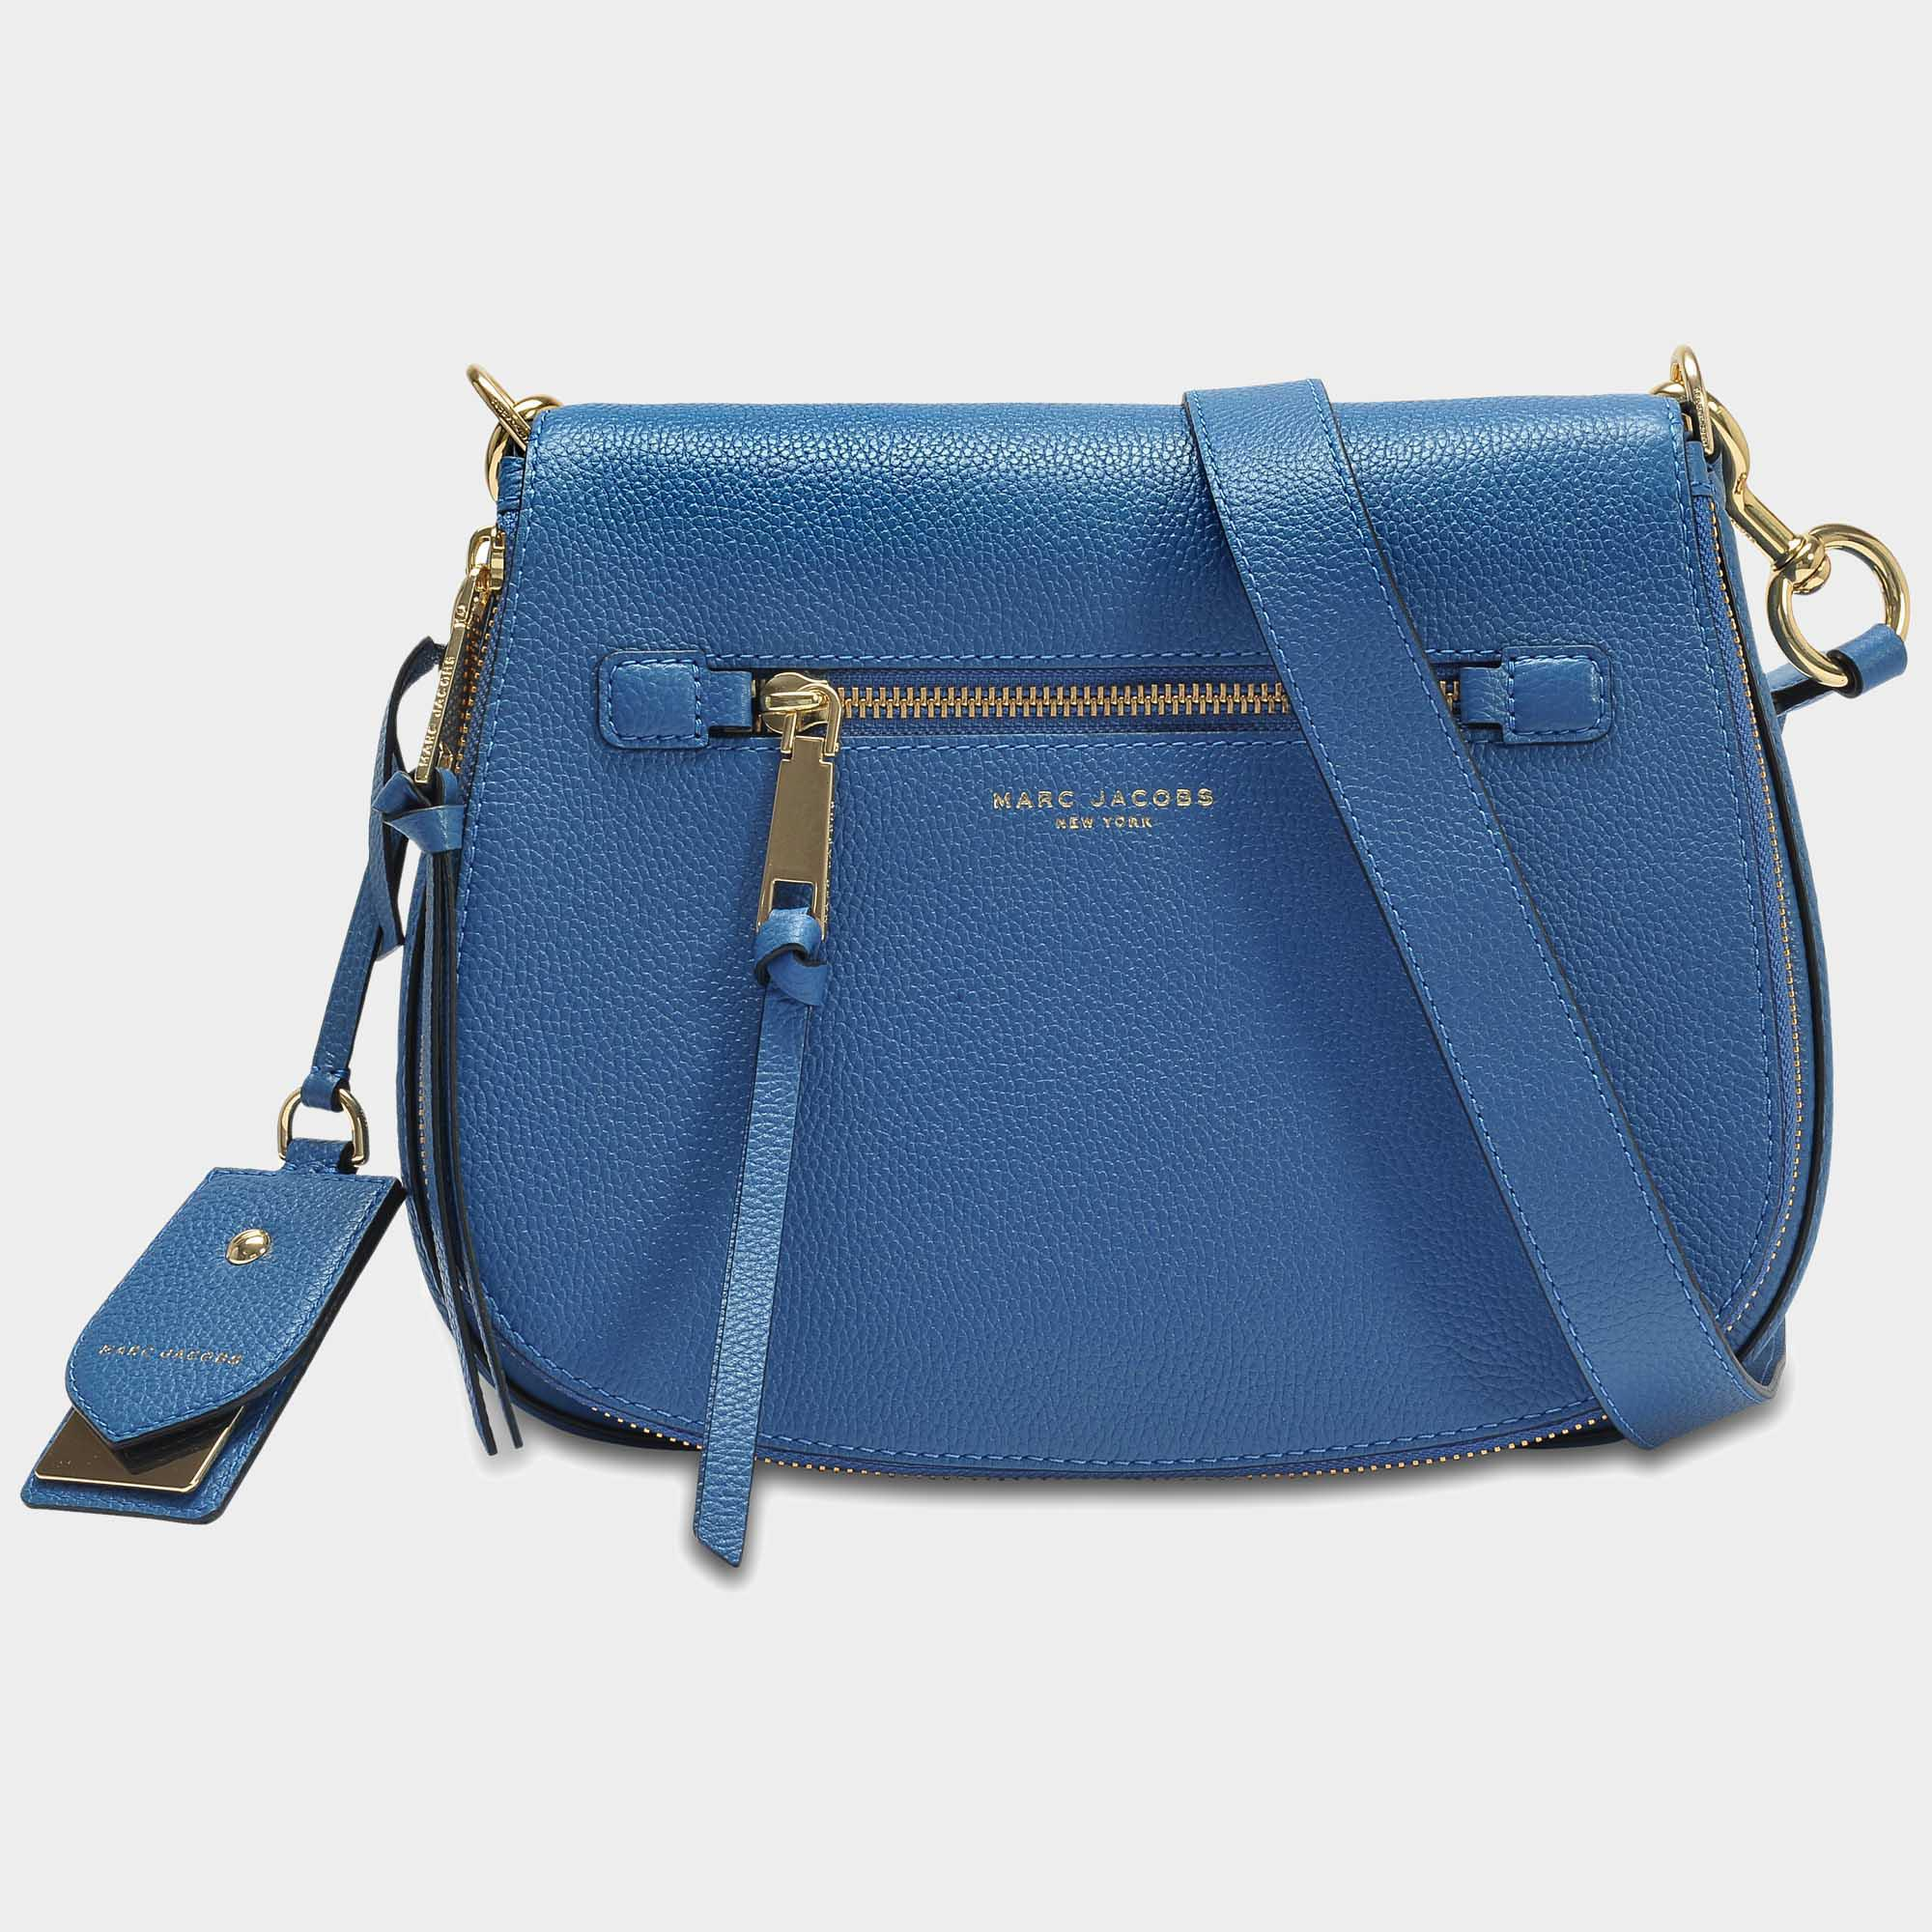 7f25ca1d1107 Lyst - Marc Jacobs Small Recruit Nomad Pebbled Leather Crossbody Bag ...